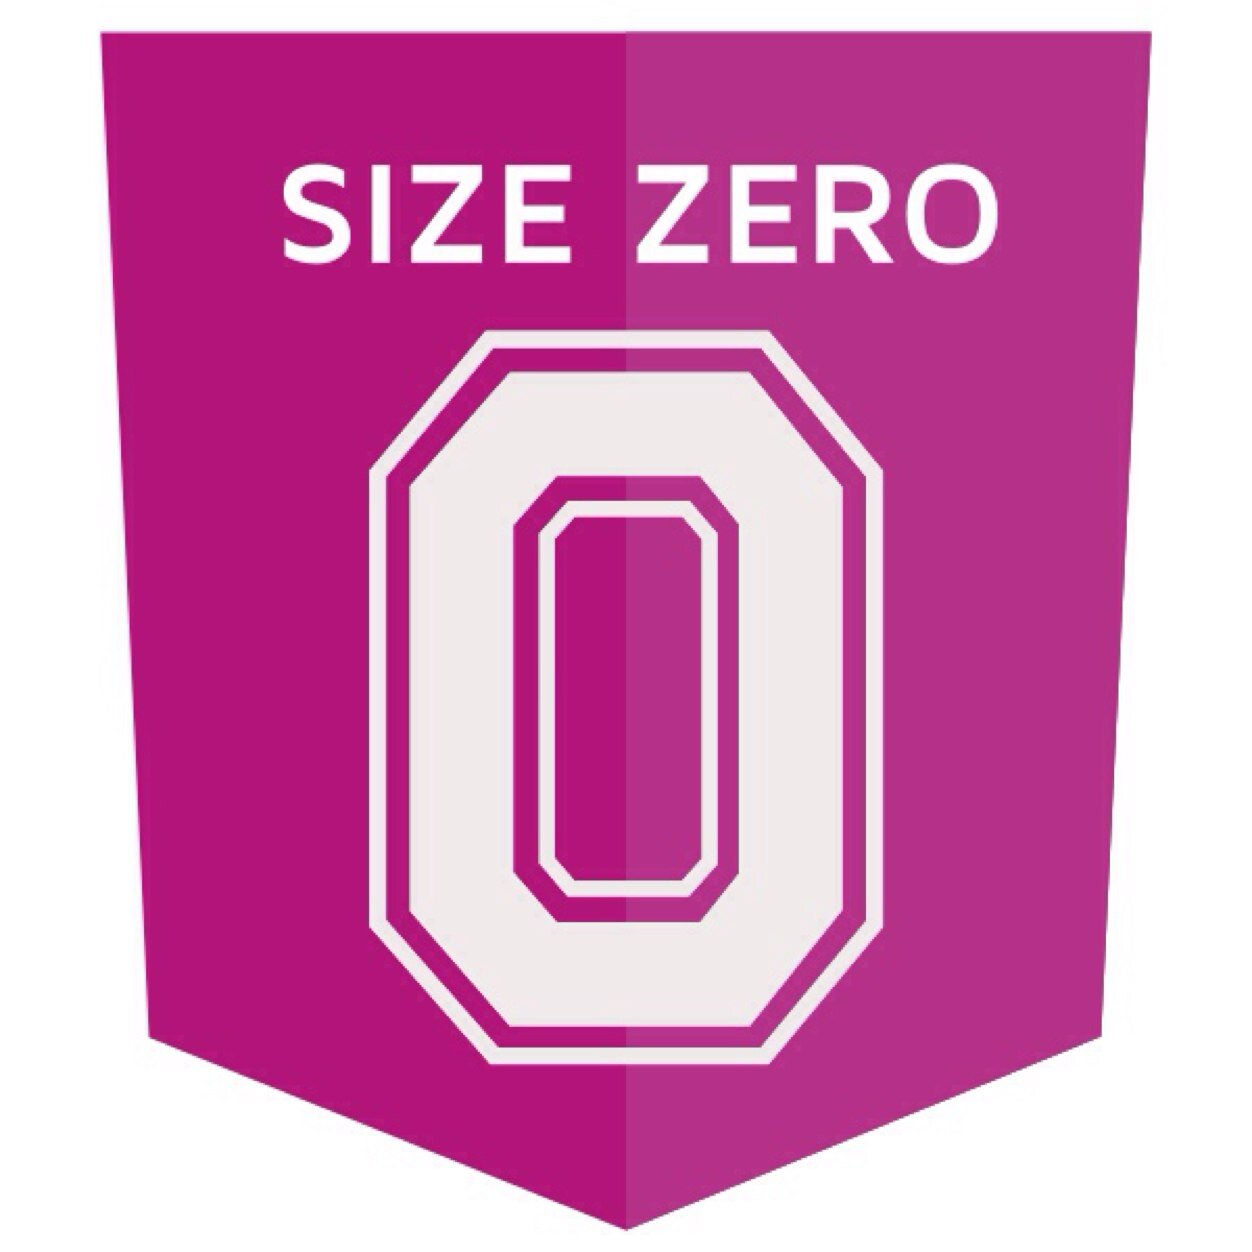 size zero If the tcp window size goes down to 0, the client will not be able to receive any more data until it processes and opens the buffer up again in this case, protocol expert will alert a zero window in expert view.